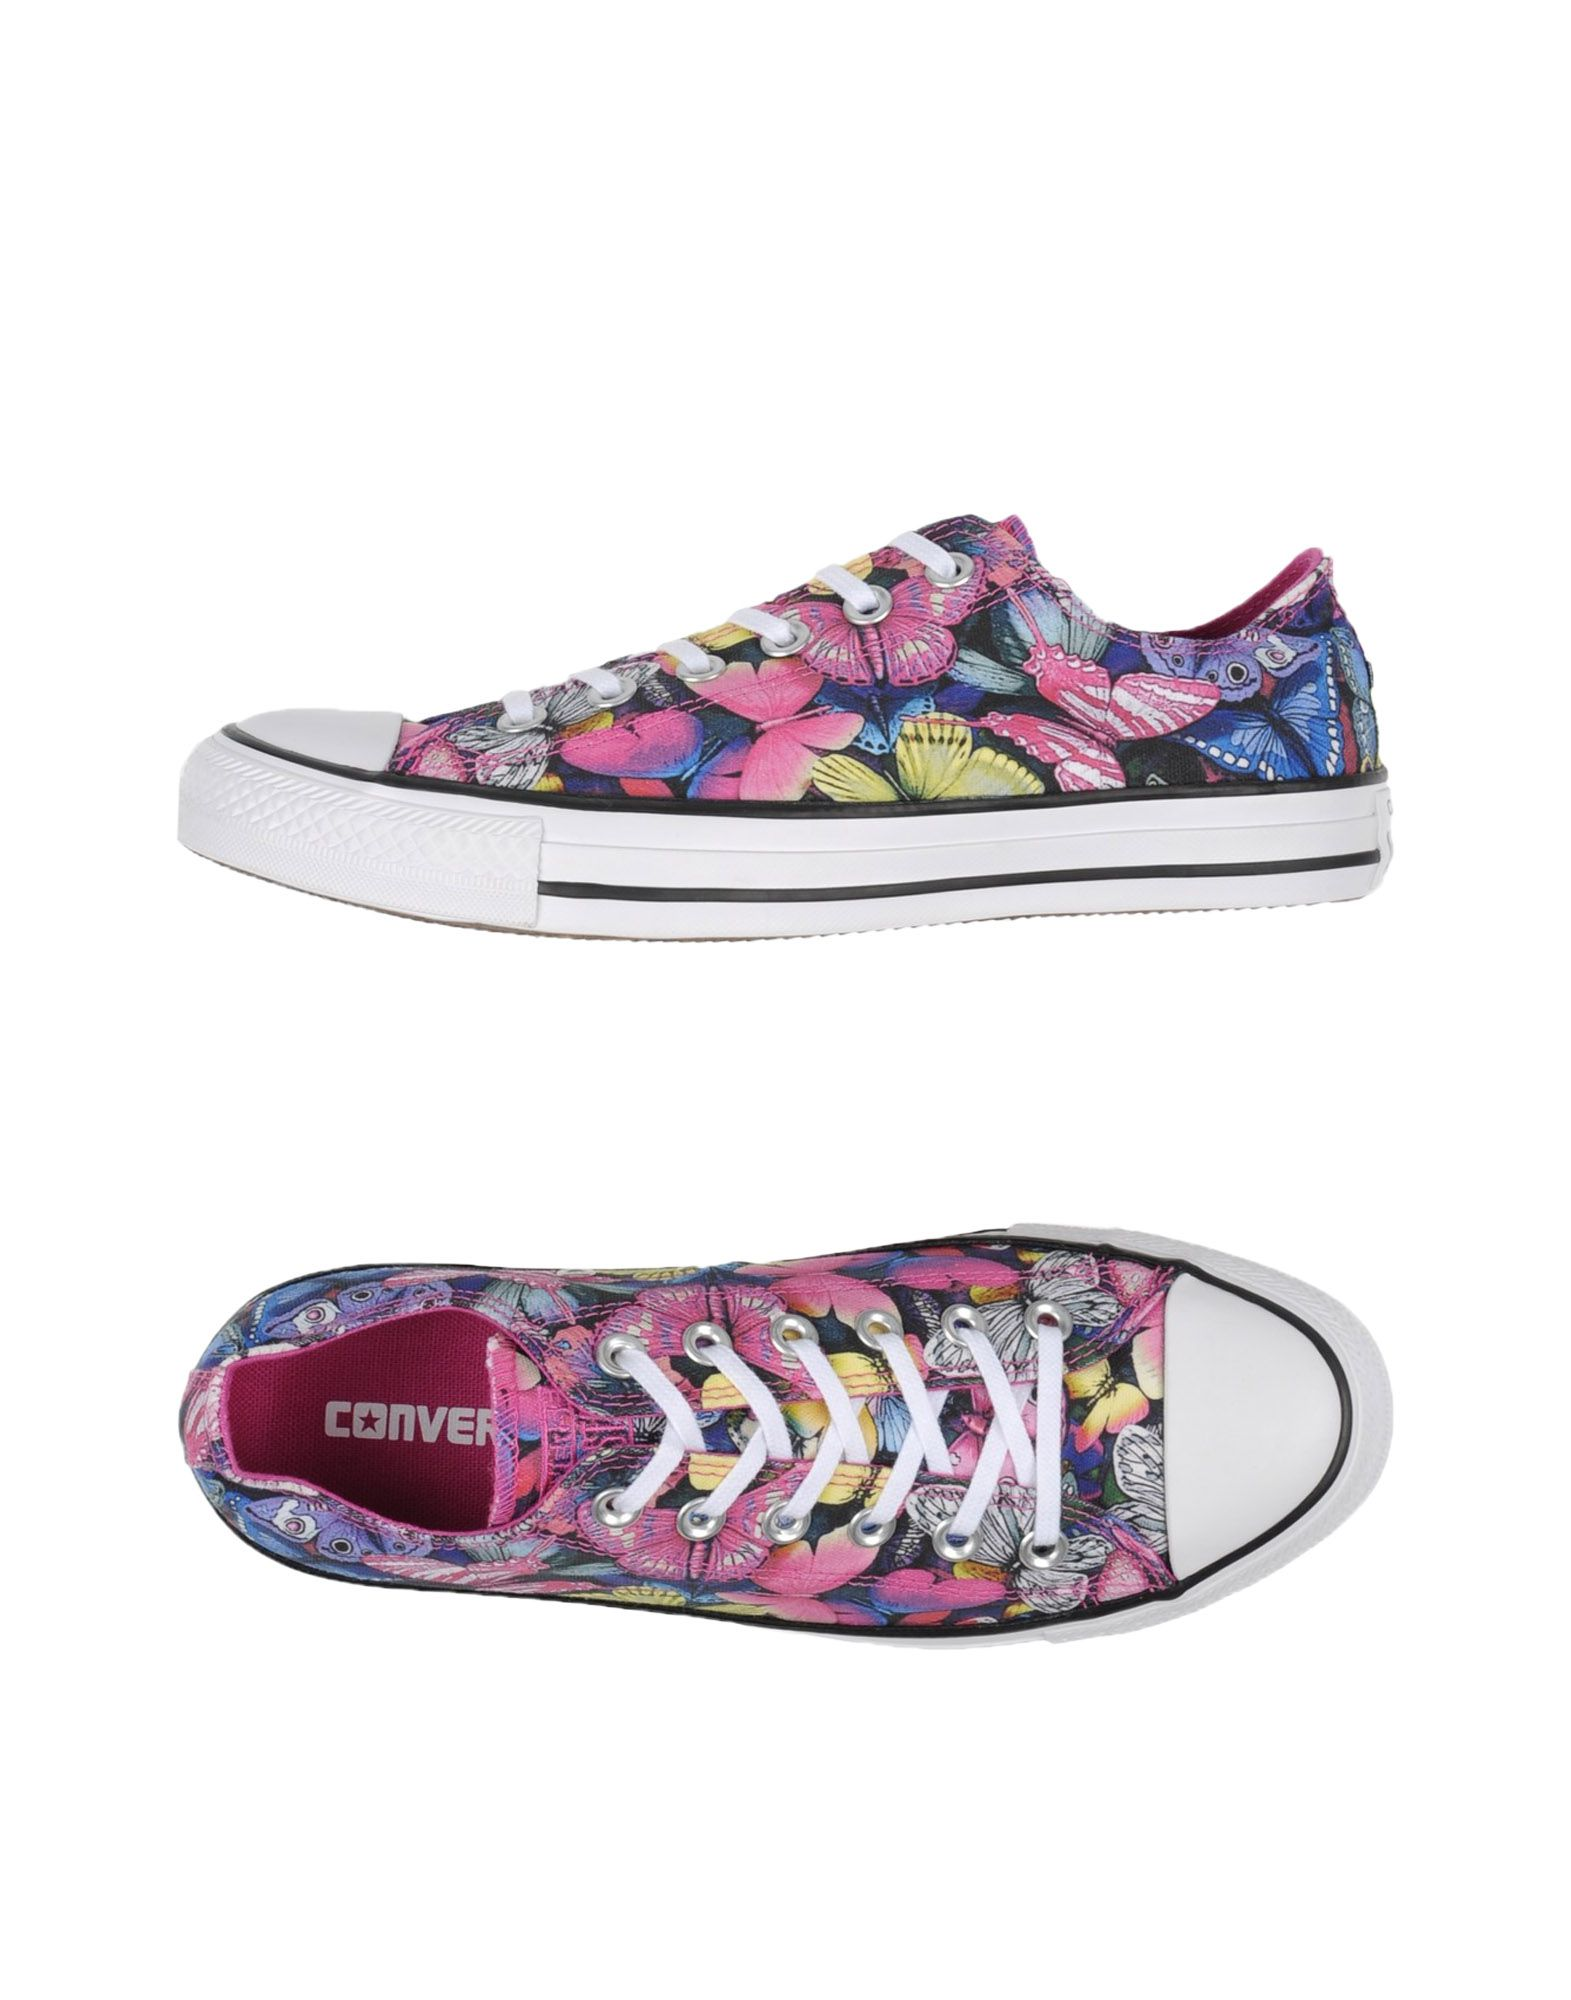 Sneakers Converse All Star All Star Ox Can Graphics - Femme - Sneakers Converse All Star sur